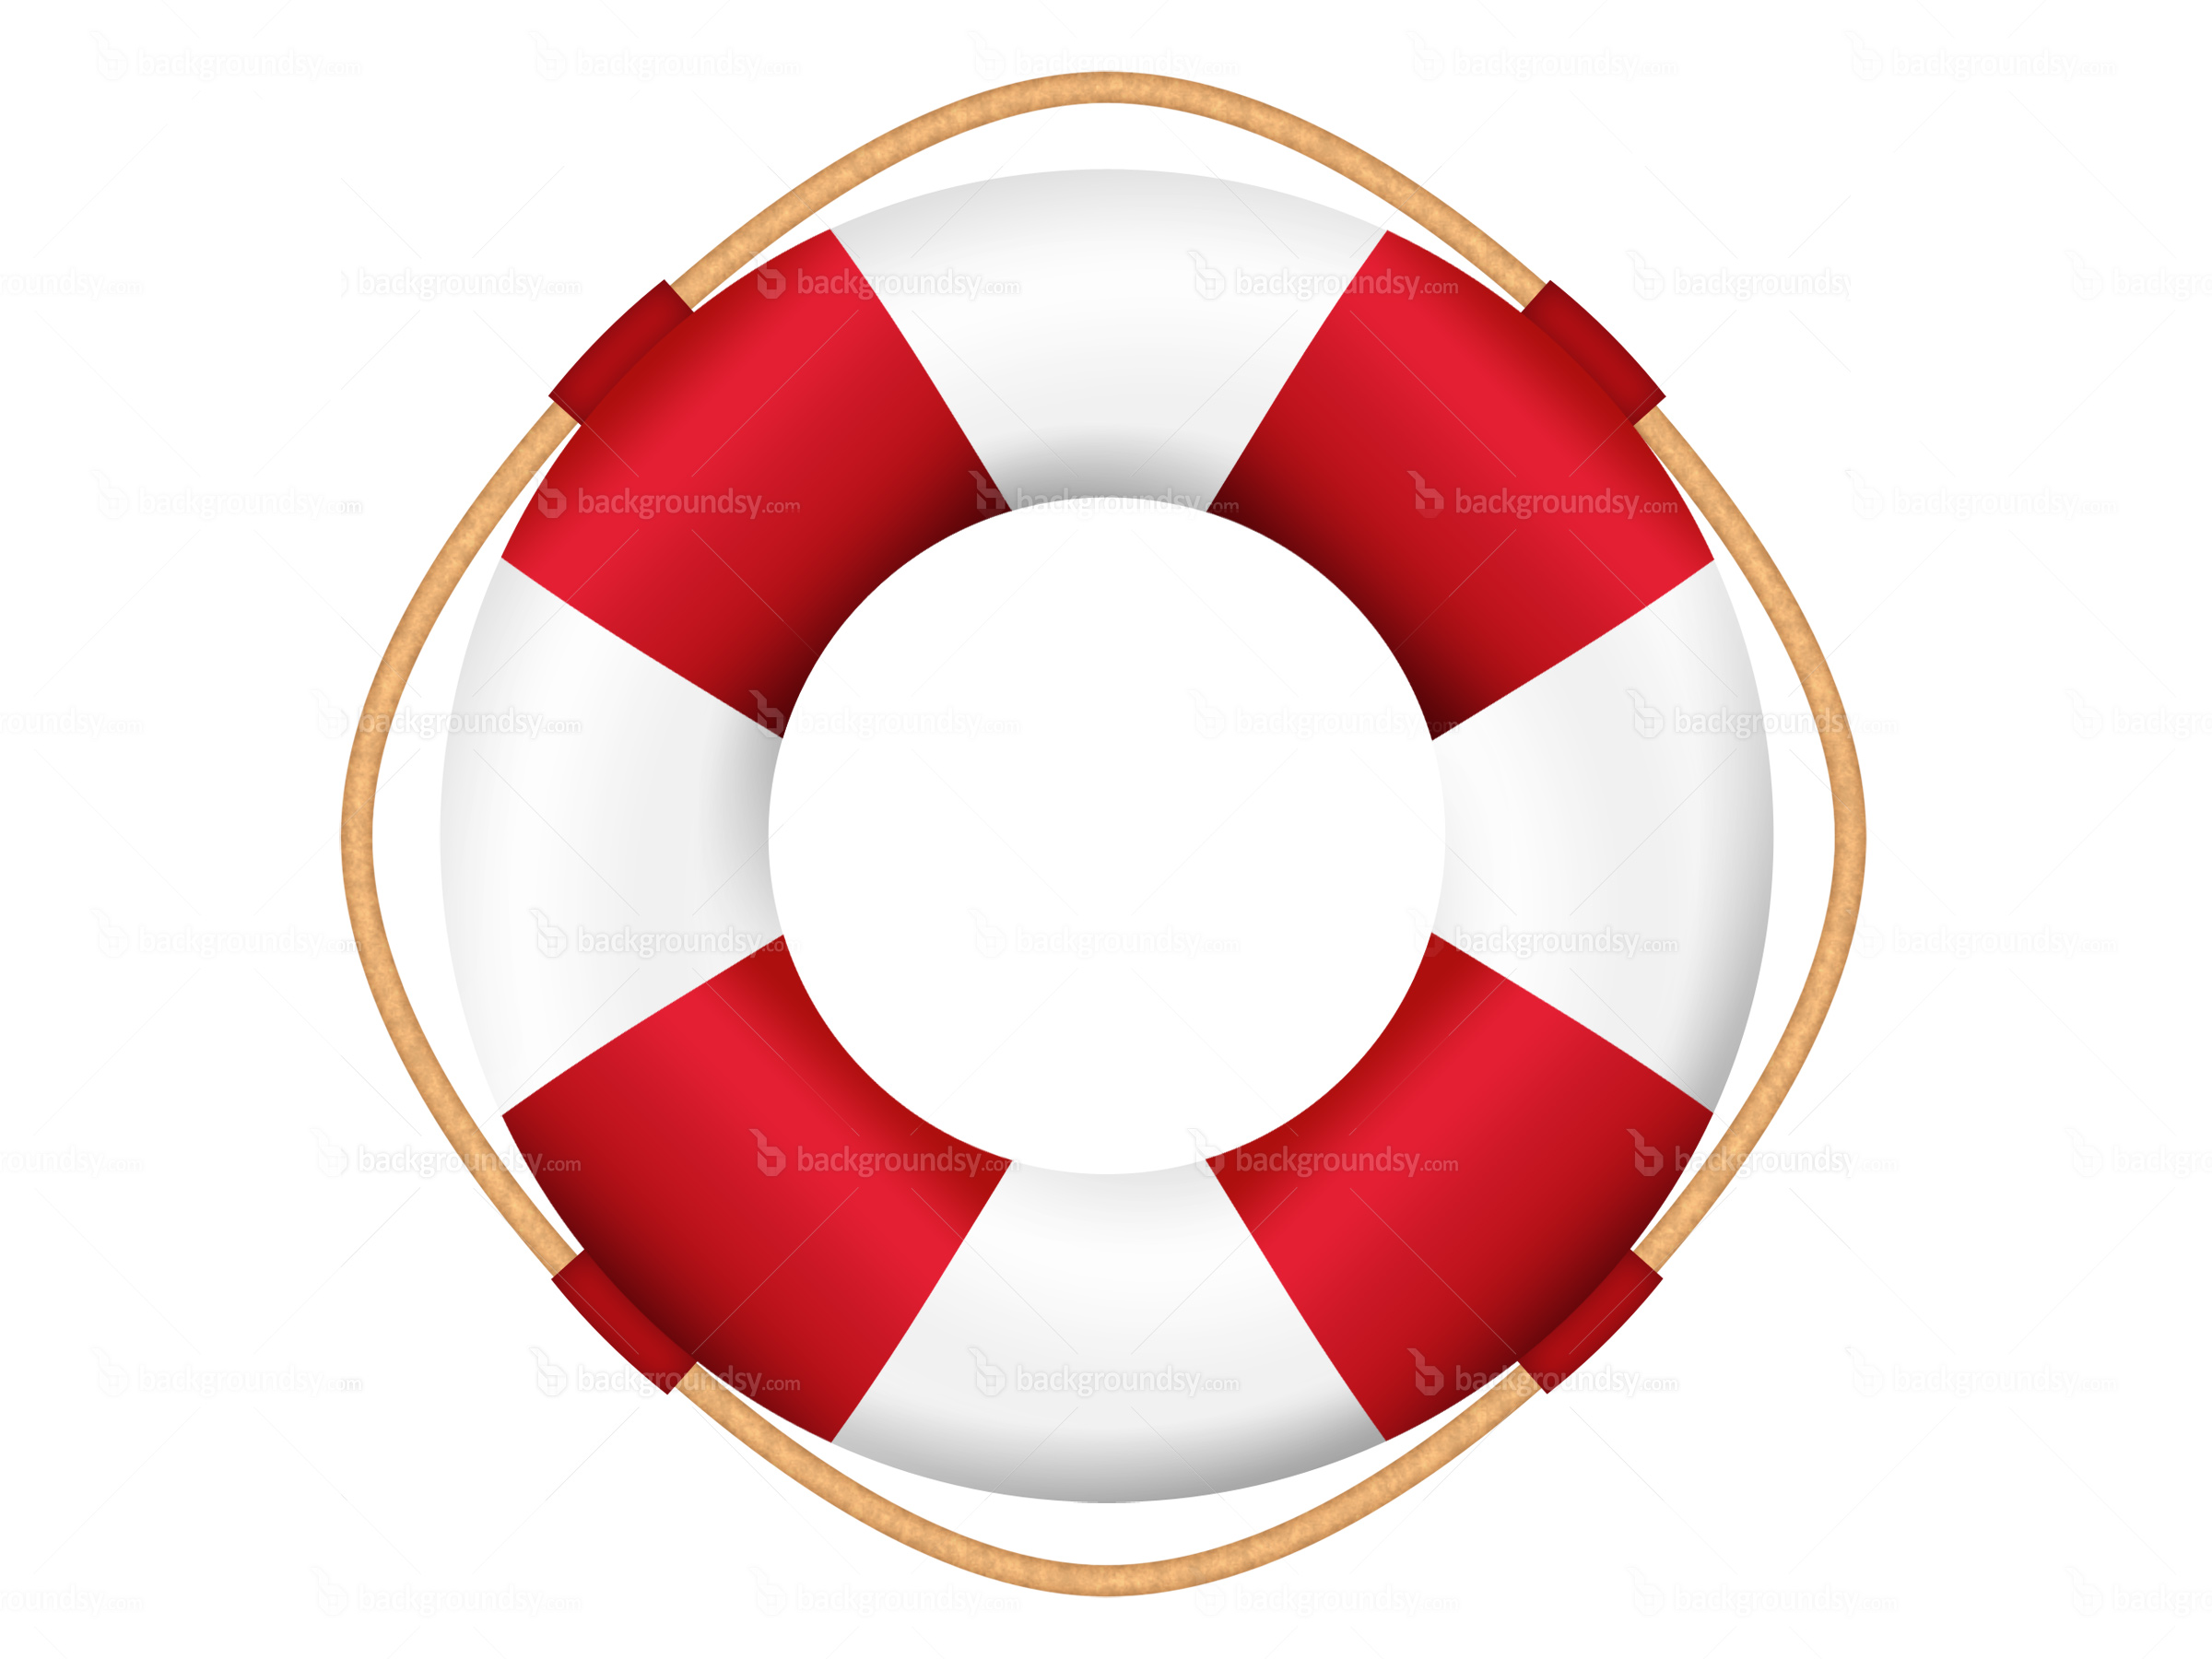 Floating clipart lifesaver Cliparts Clipart Life Lifesaver Saver